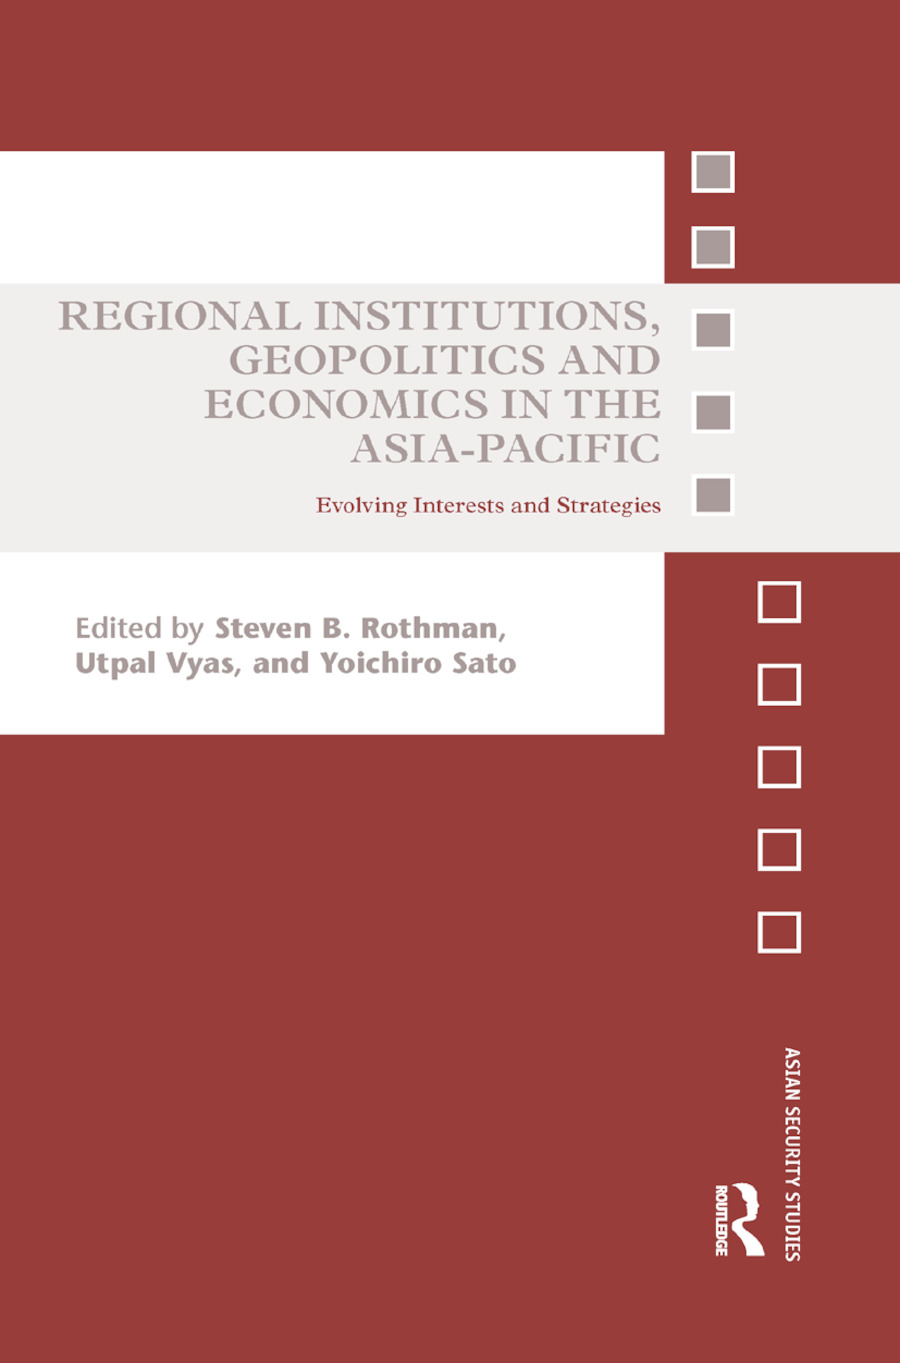 Regional Institutions, Geopolitics and Economics in the Asia-Pacific: Evolving Interests and Strategies book cover